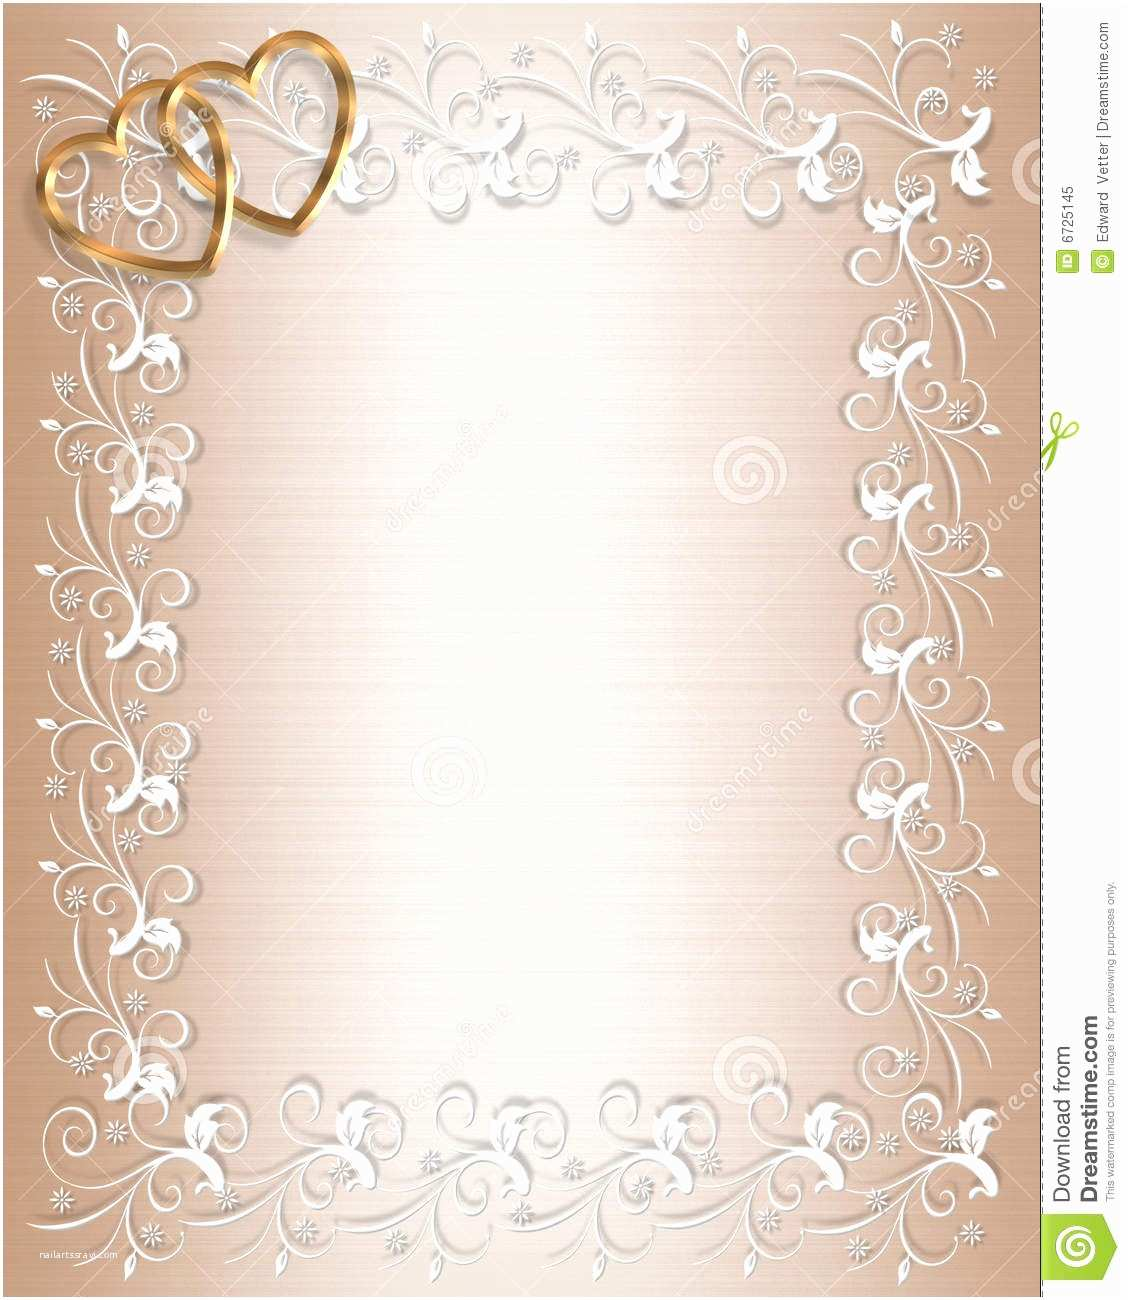 Background Images for Wedding Invitation Cards Wedding Invitation Background Wedding Invitation